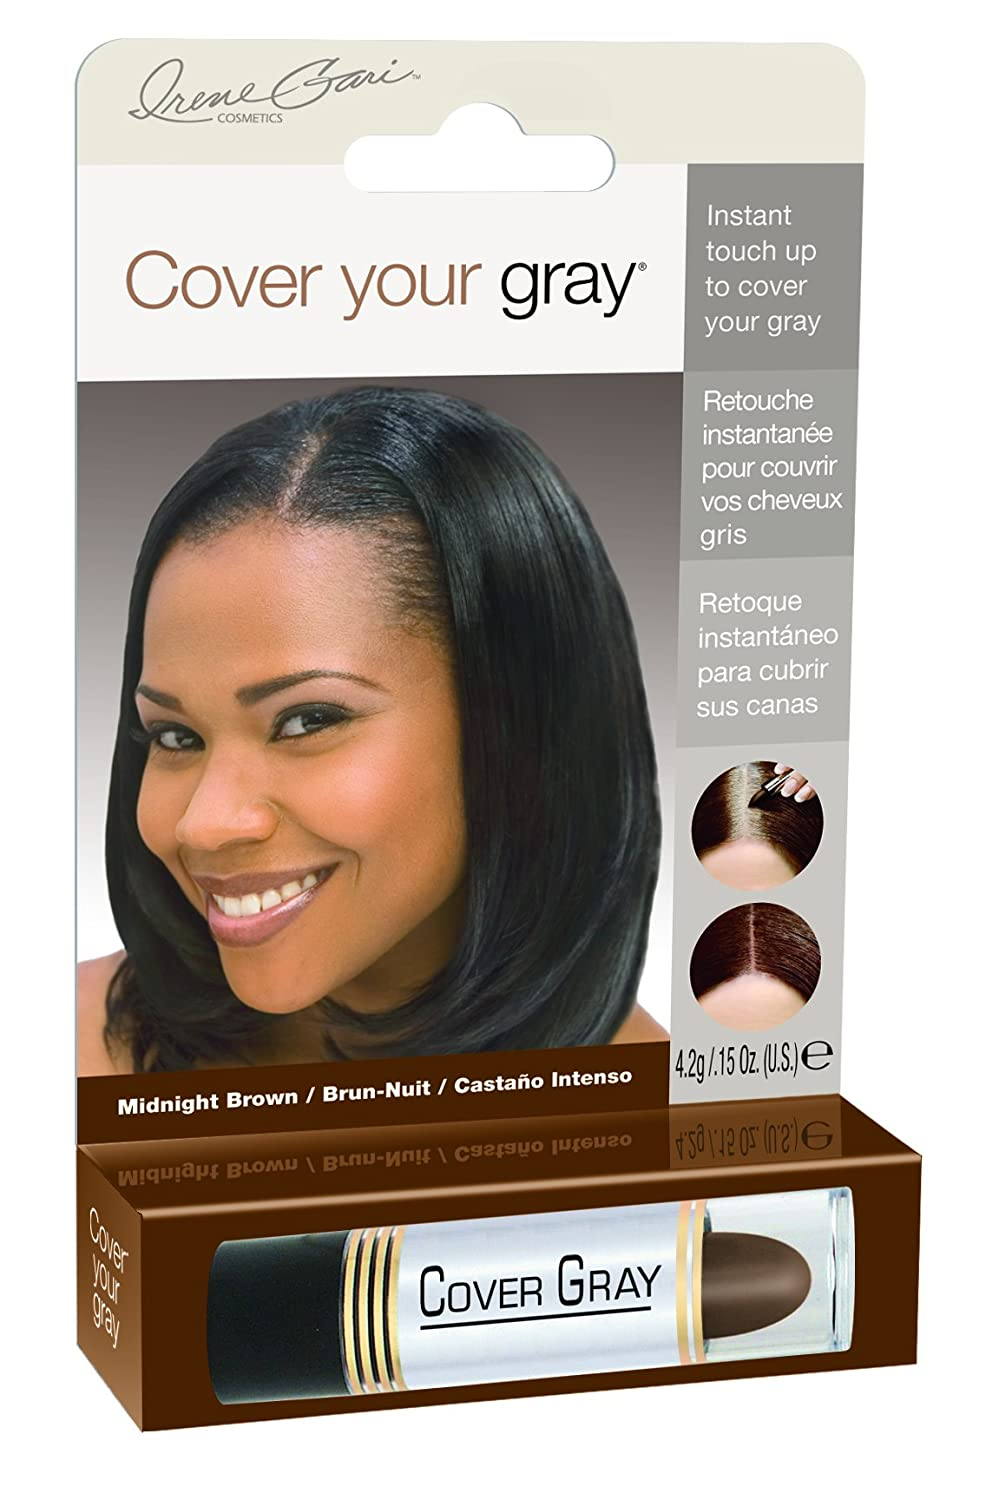 Cover Your Gray for Women Touch Up Stick Light Brown/Blonde, 0.15 oz Daggett & Ramsdell IG-LLB